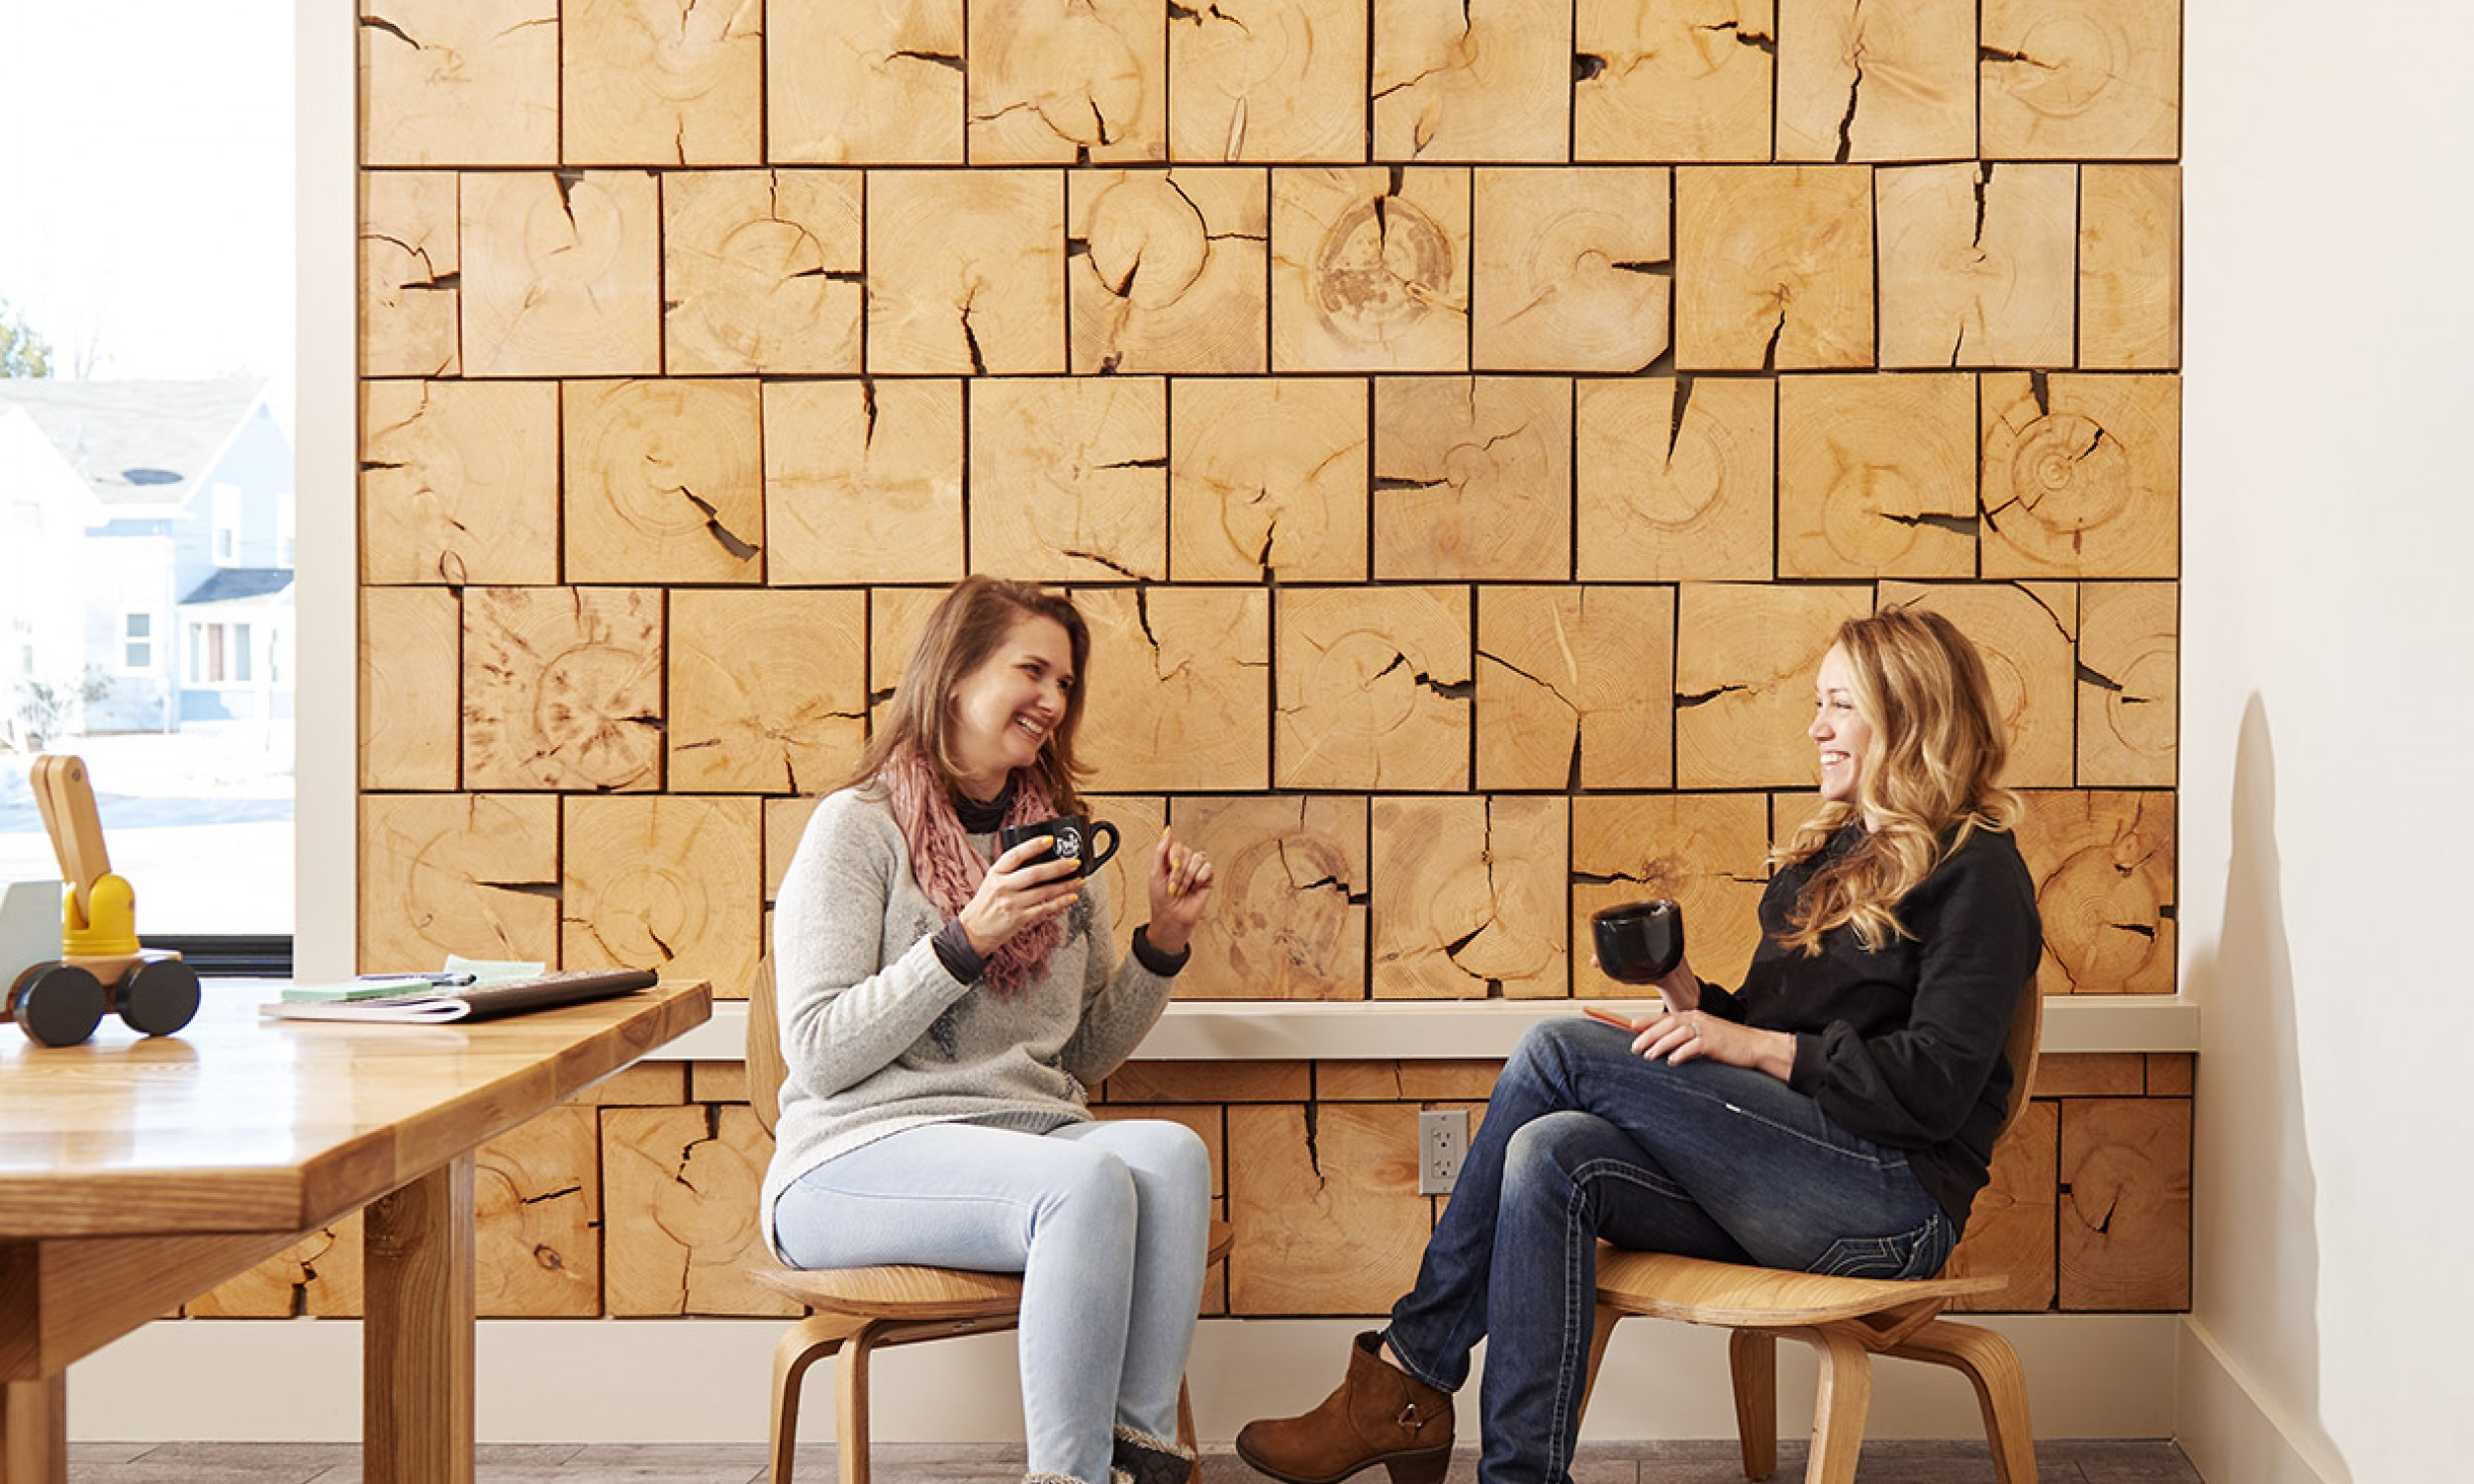 Wood wall finish, maine architect, wood wall tiles, casual conversation